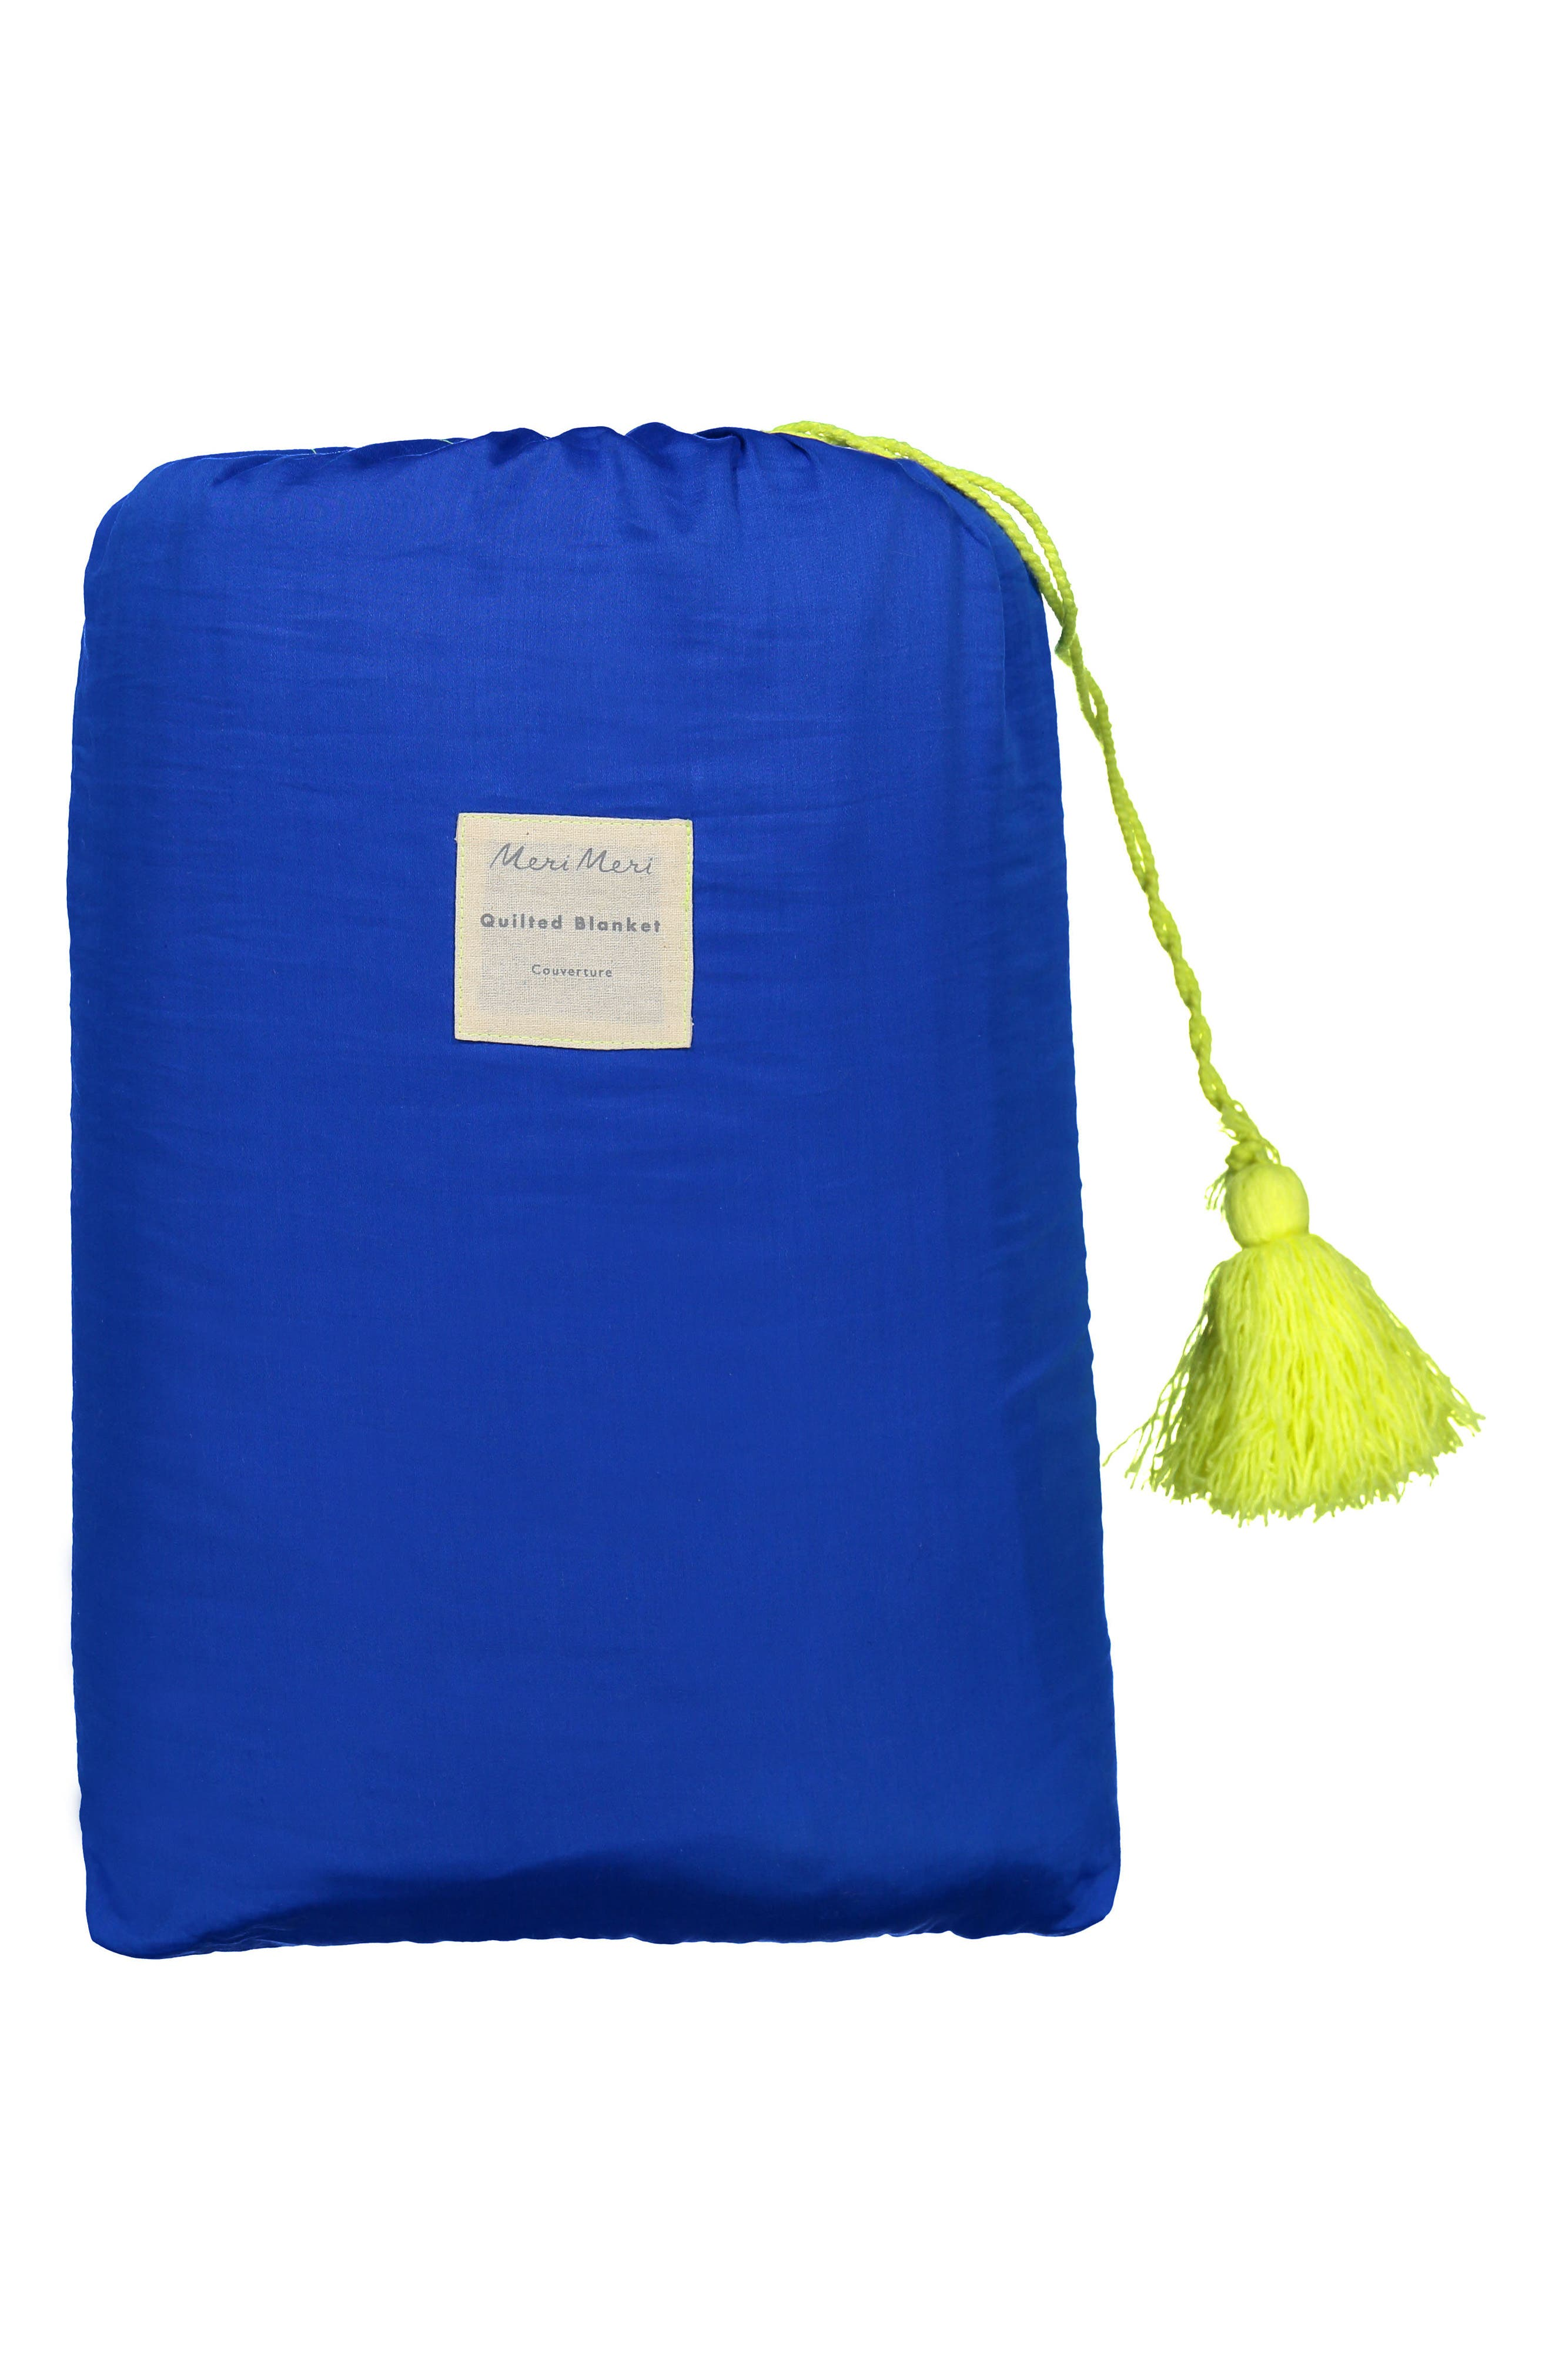 Organic Cotton Quilted Blanket,                             Alternate thumbnail 3, color,                             BLUE